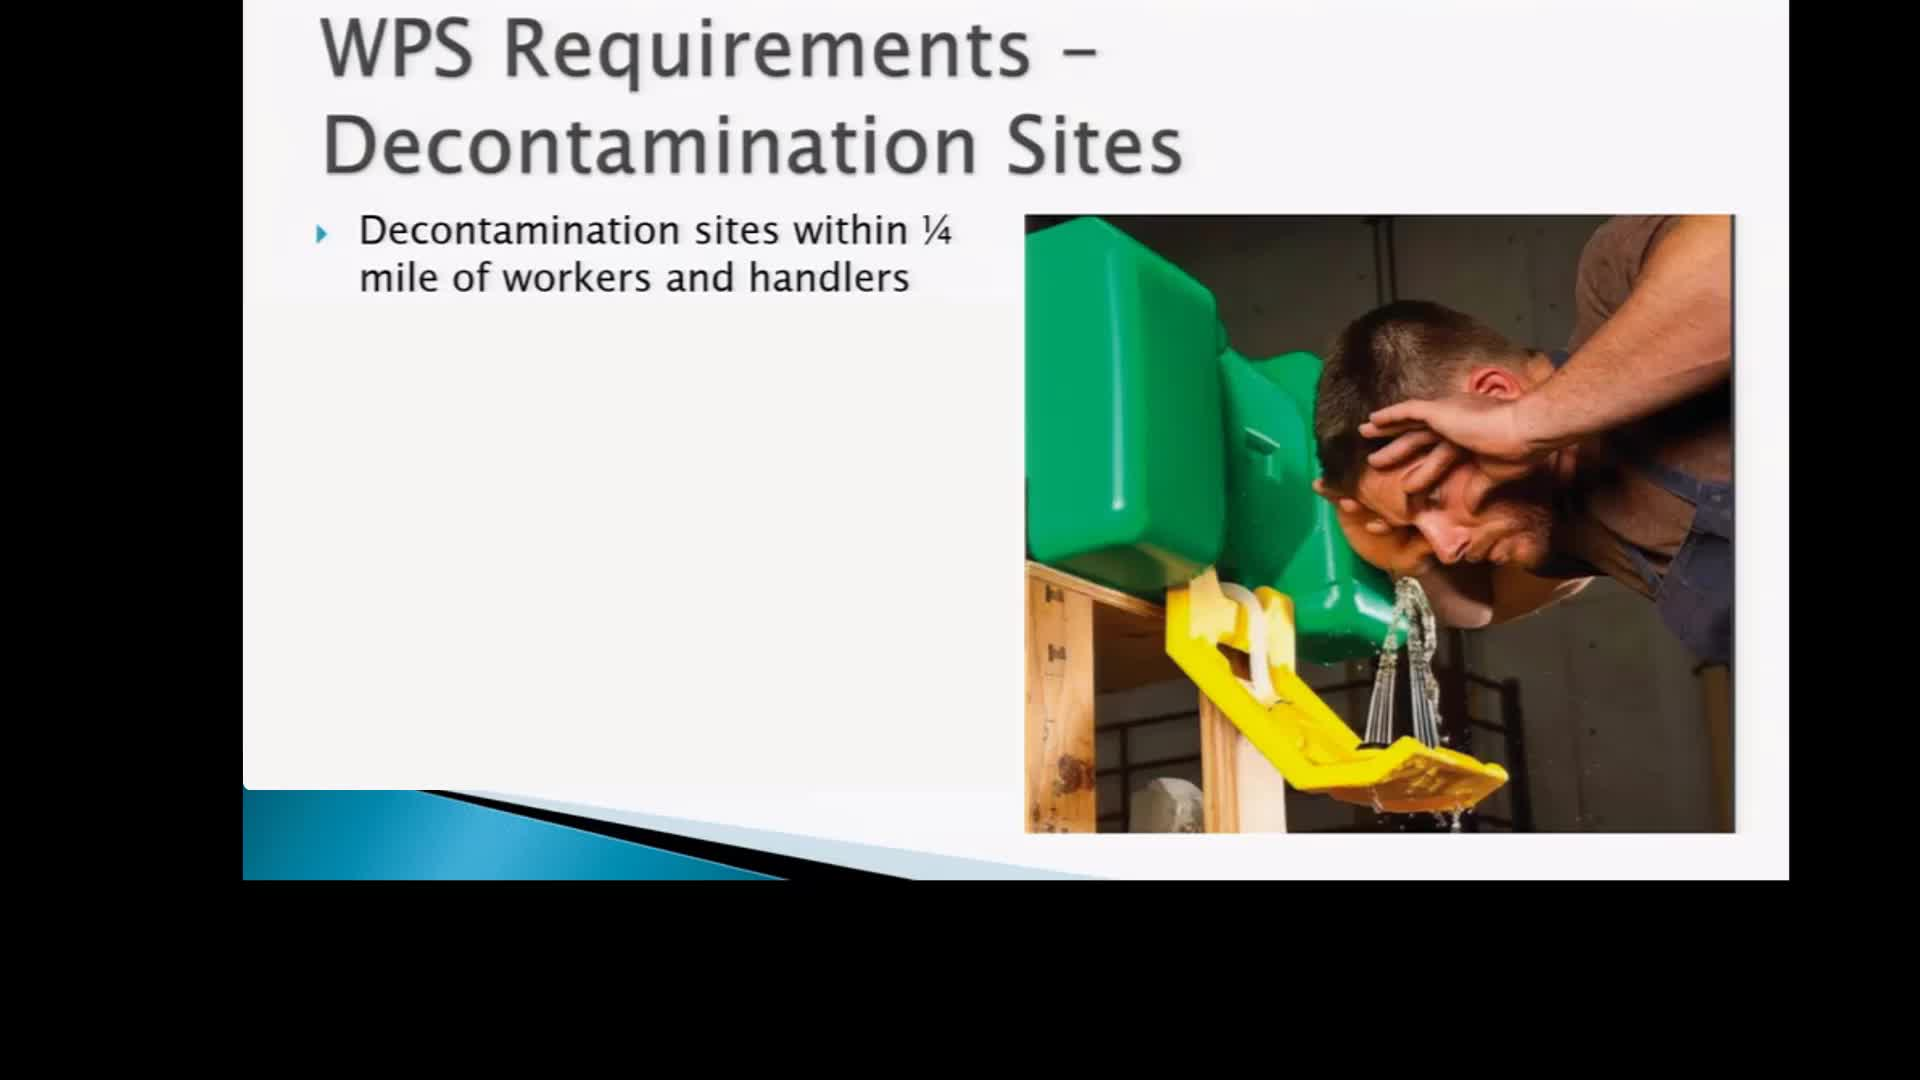 WPS Decontamination Supplies